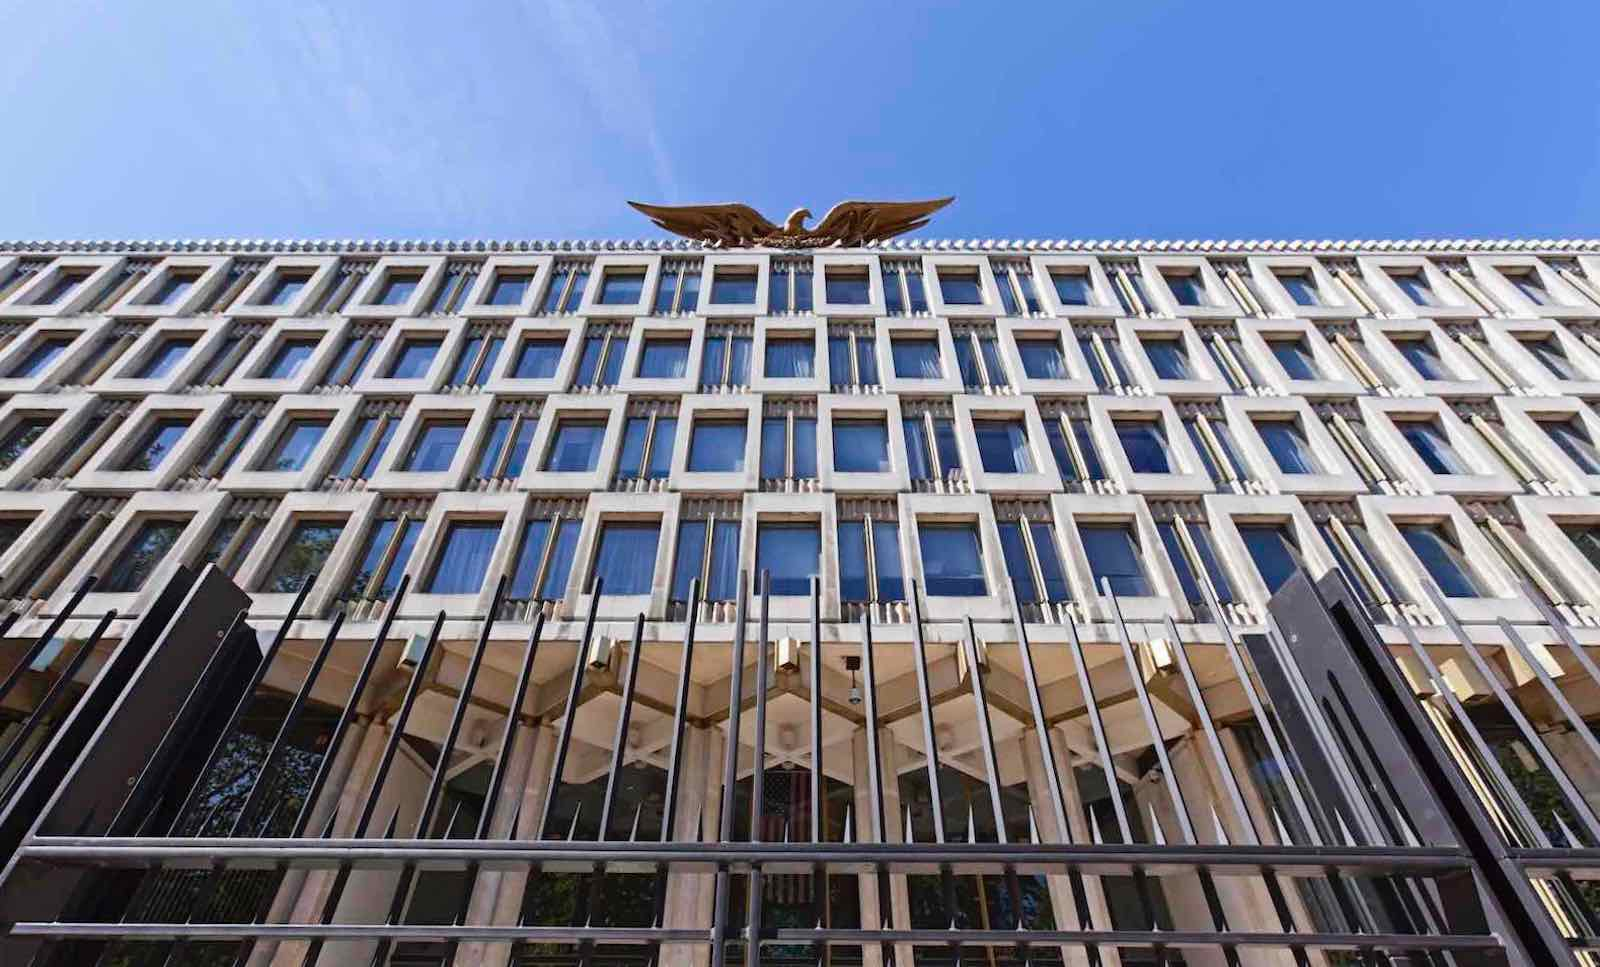 The US Embassy in London (Photo: TerryJ/Getty Images)